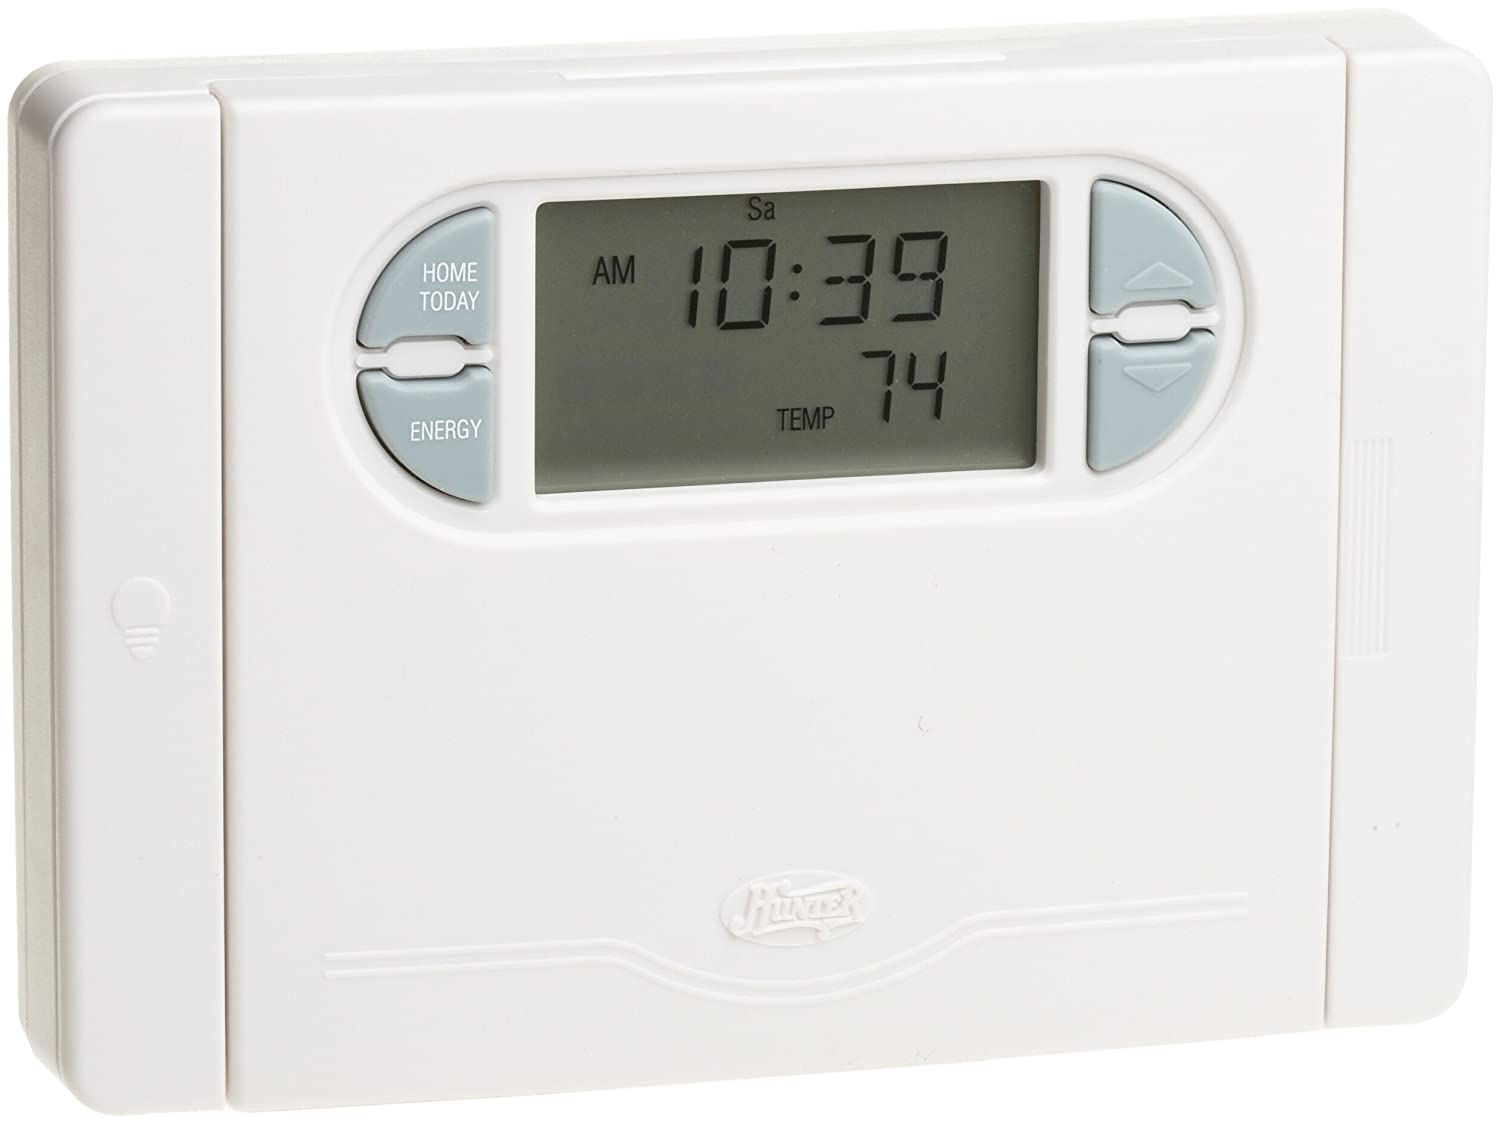 hunter 44550 auto save 7 day programmable thermostat programmable rh amazon com hunter thermostat manual 44133 hunter thermostat manual 44378